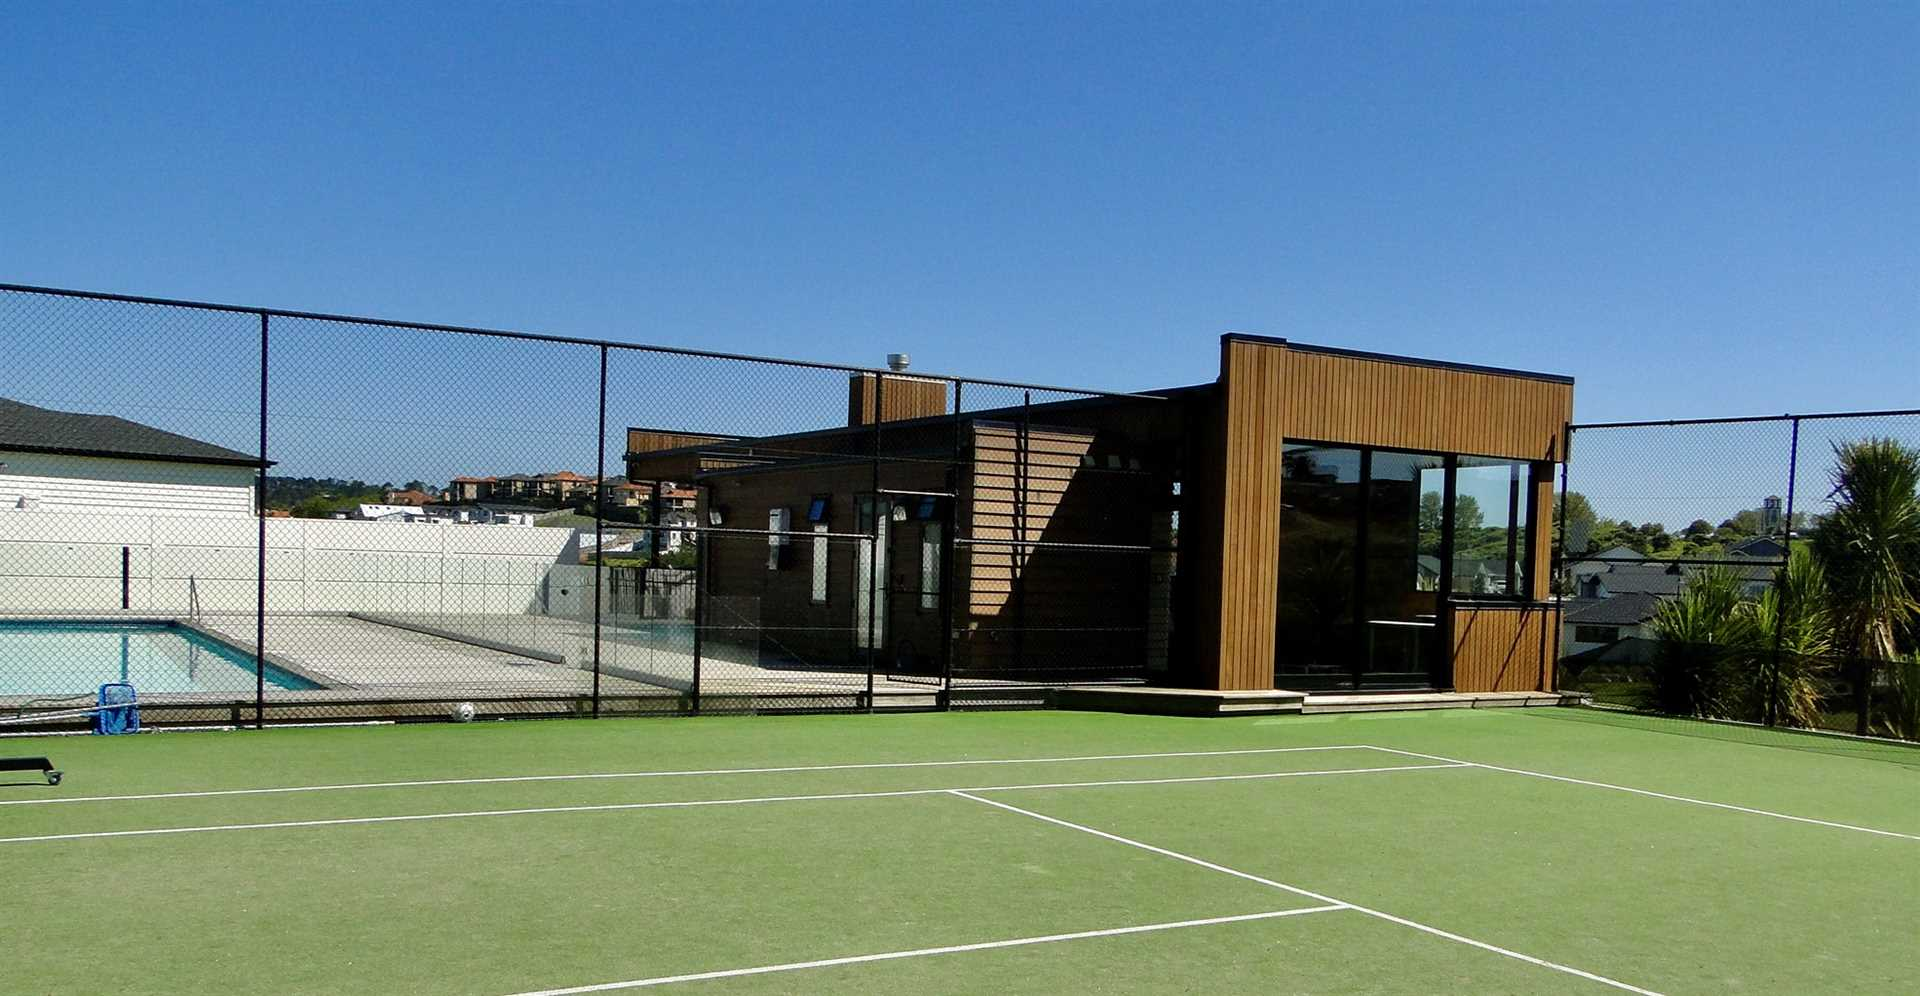 Owner's Association Clubhouse, Tennis Court, Pool